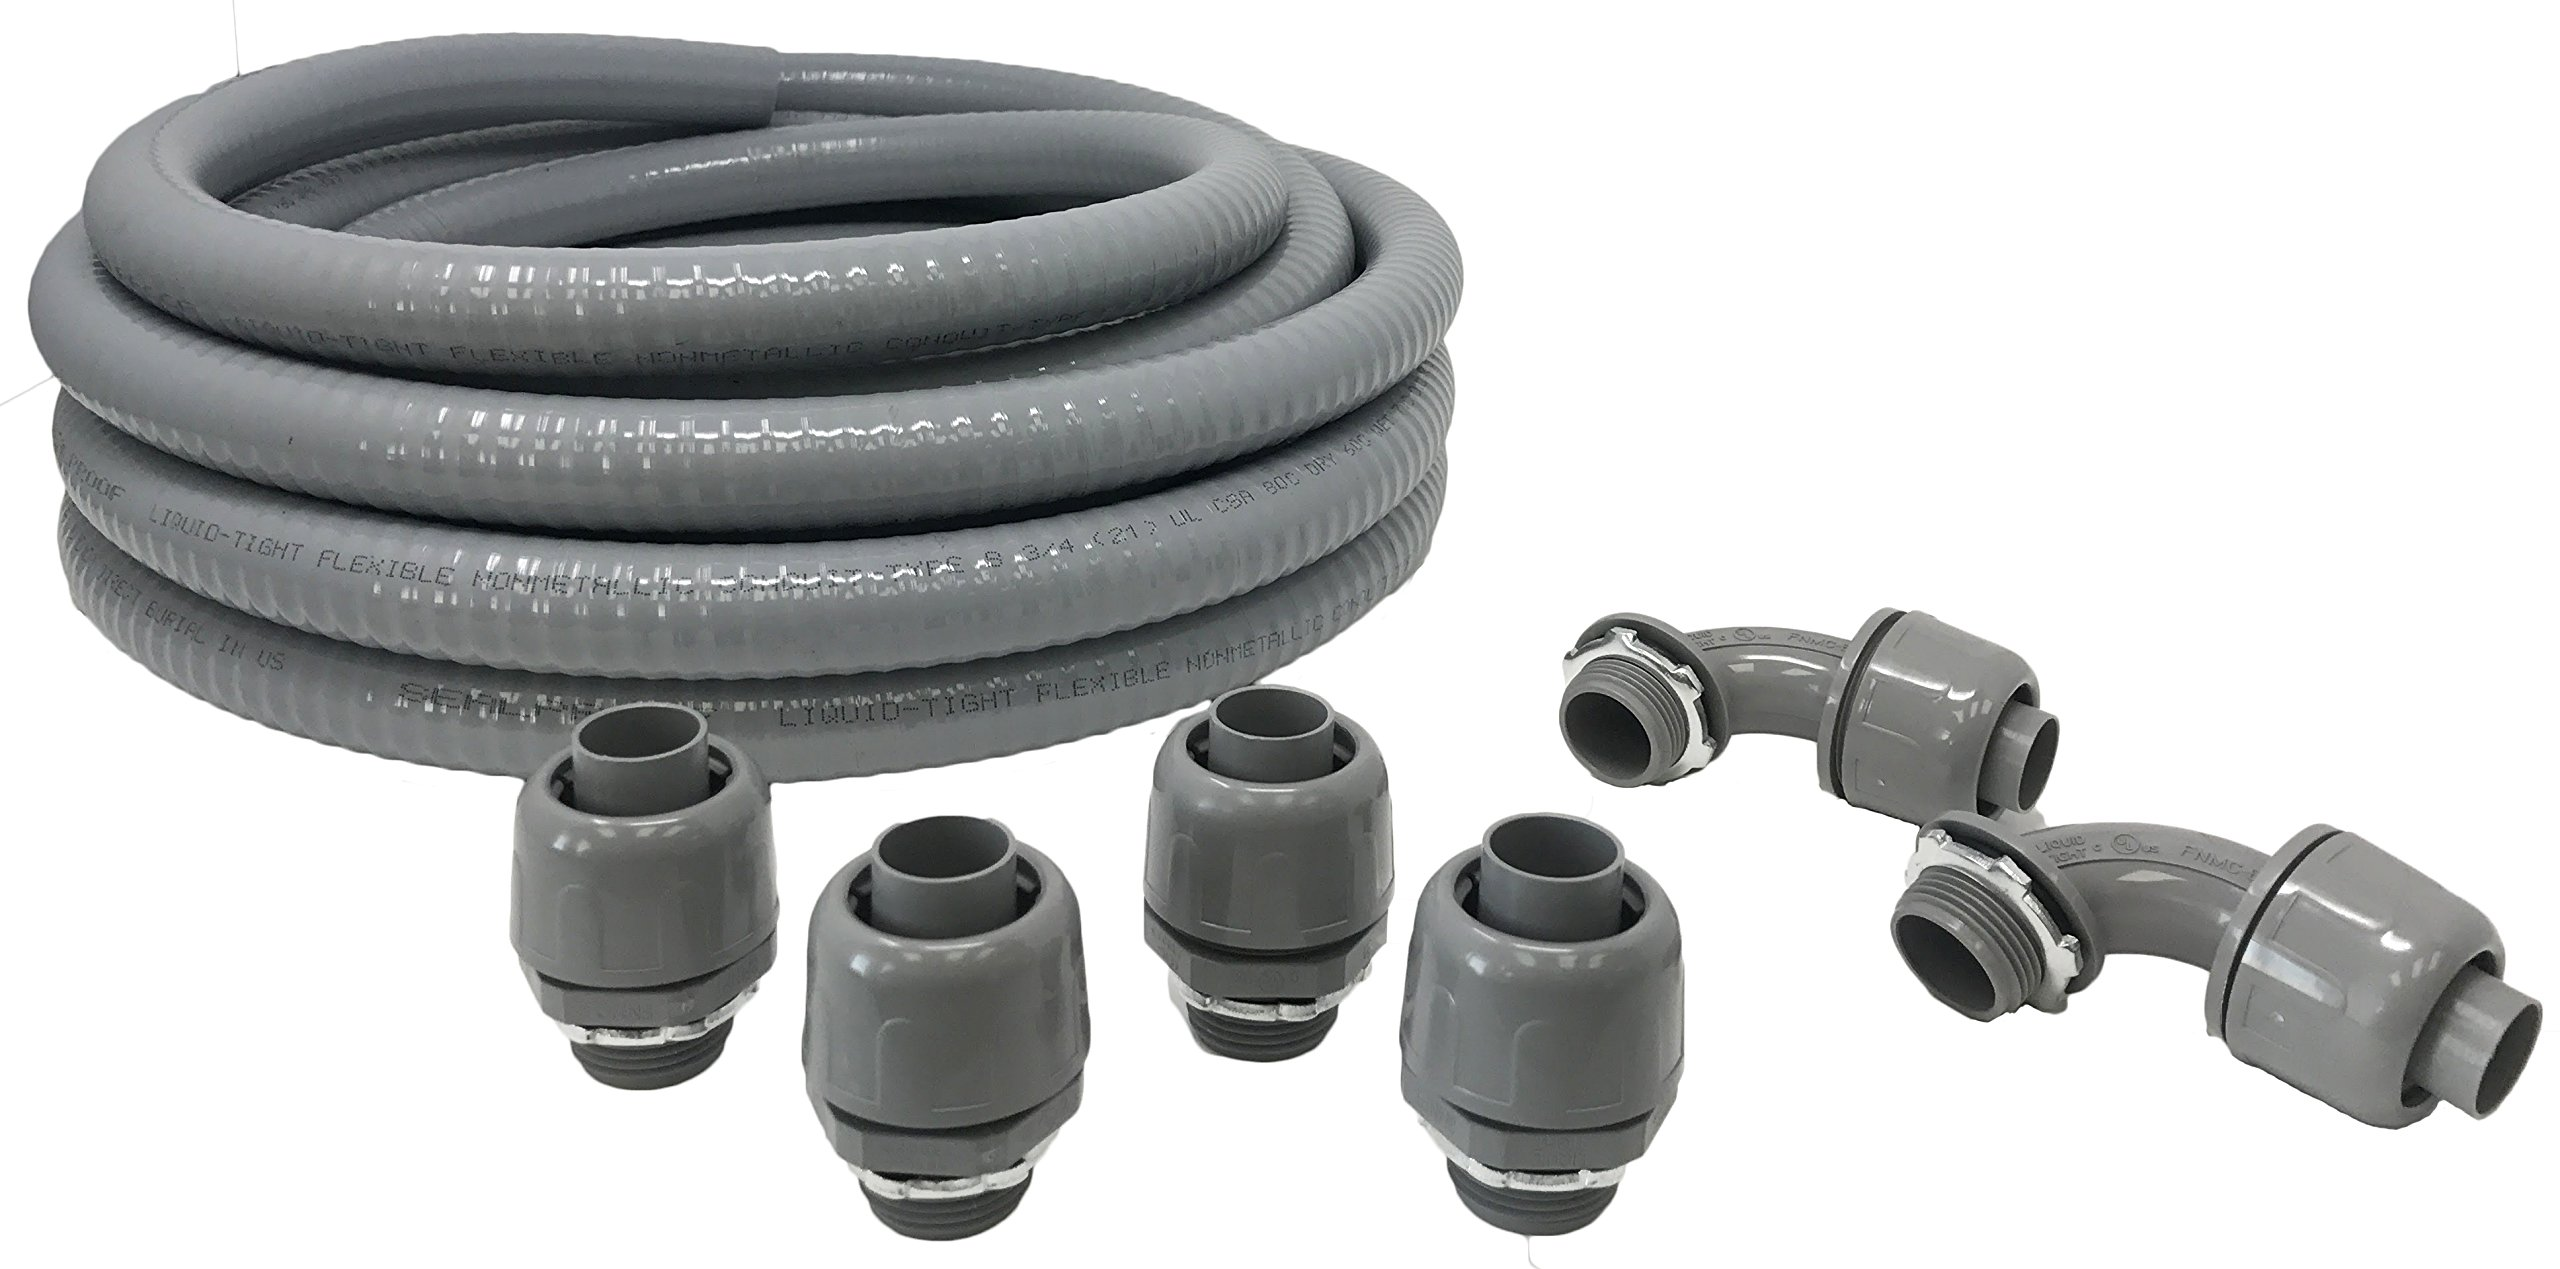 Sealproof Non-metallic Liquid-Tight Conduit and Connector Kit, 3/4-Inch 25 Foot Flexible Electrical Conduit Type B with 4 Straight and 2 90-Degree Conduit Connector Fittings, 3/4'' Dia